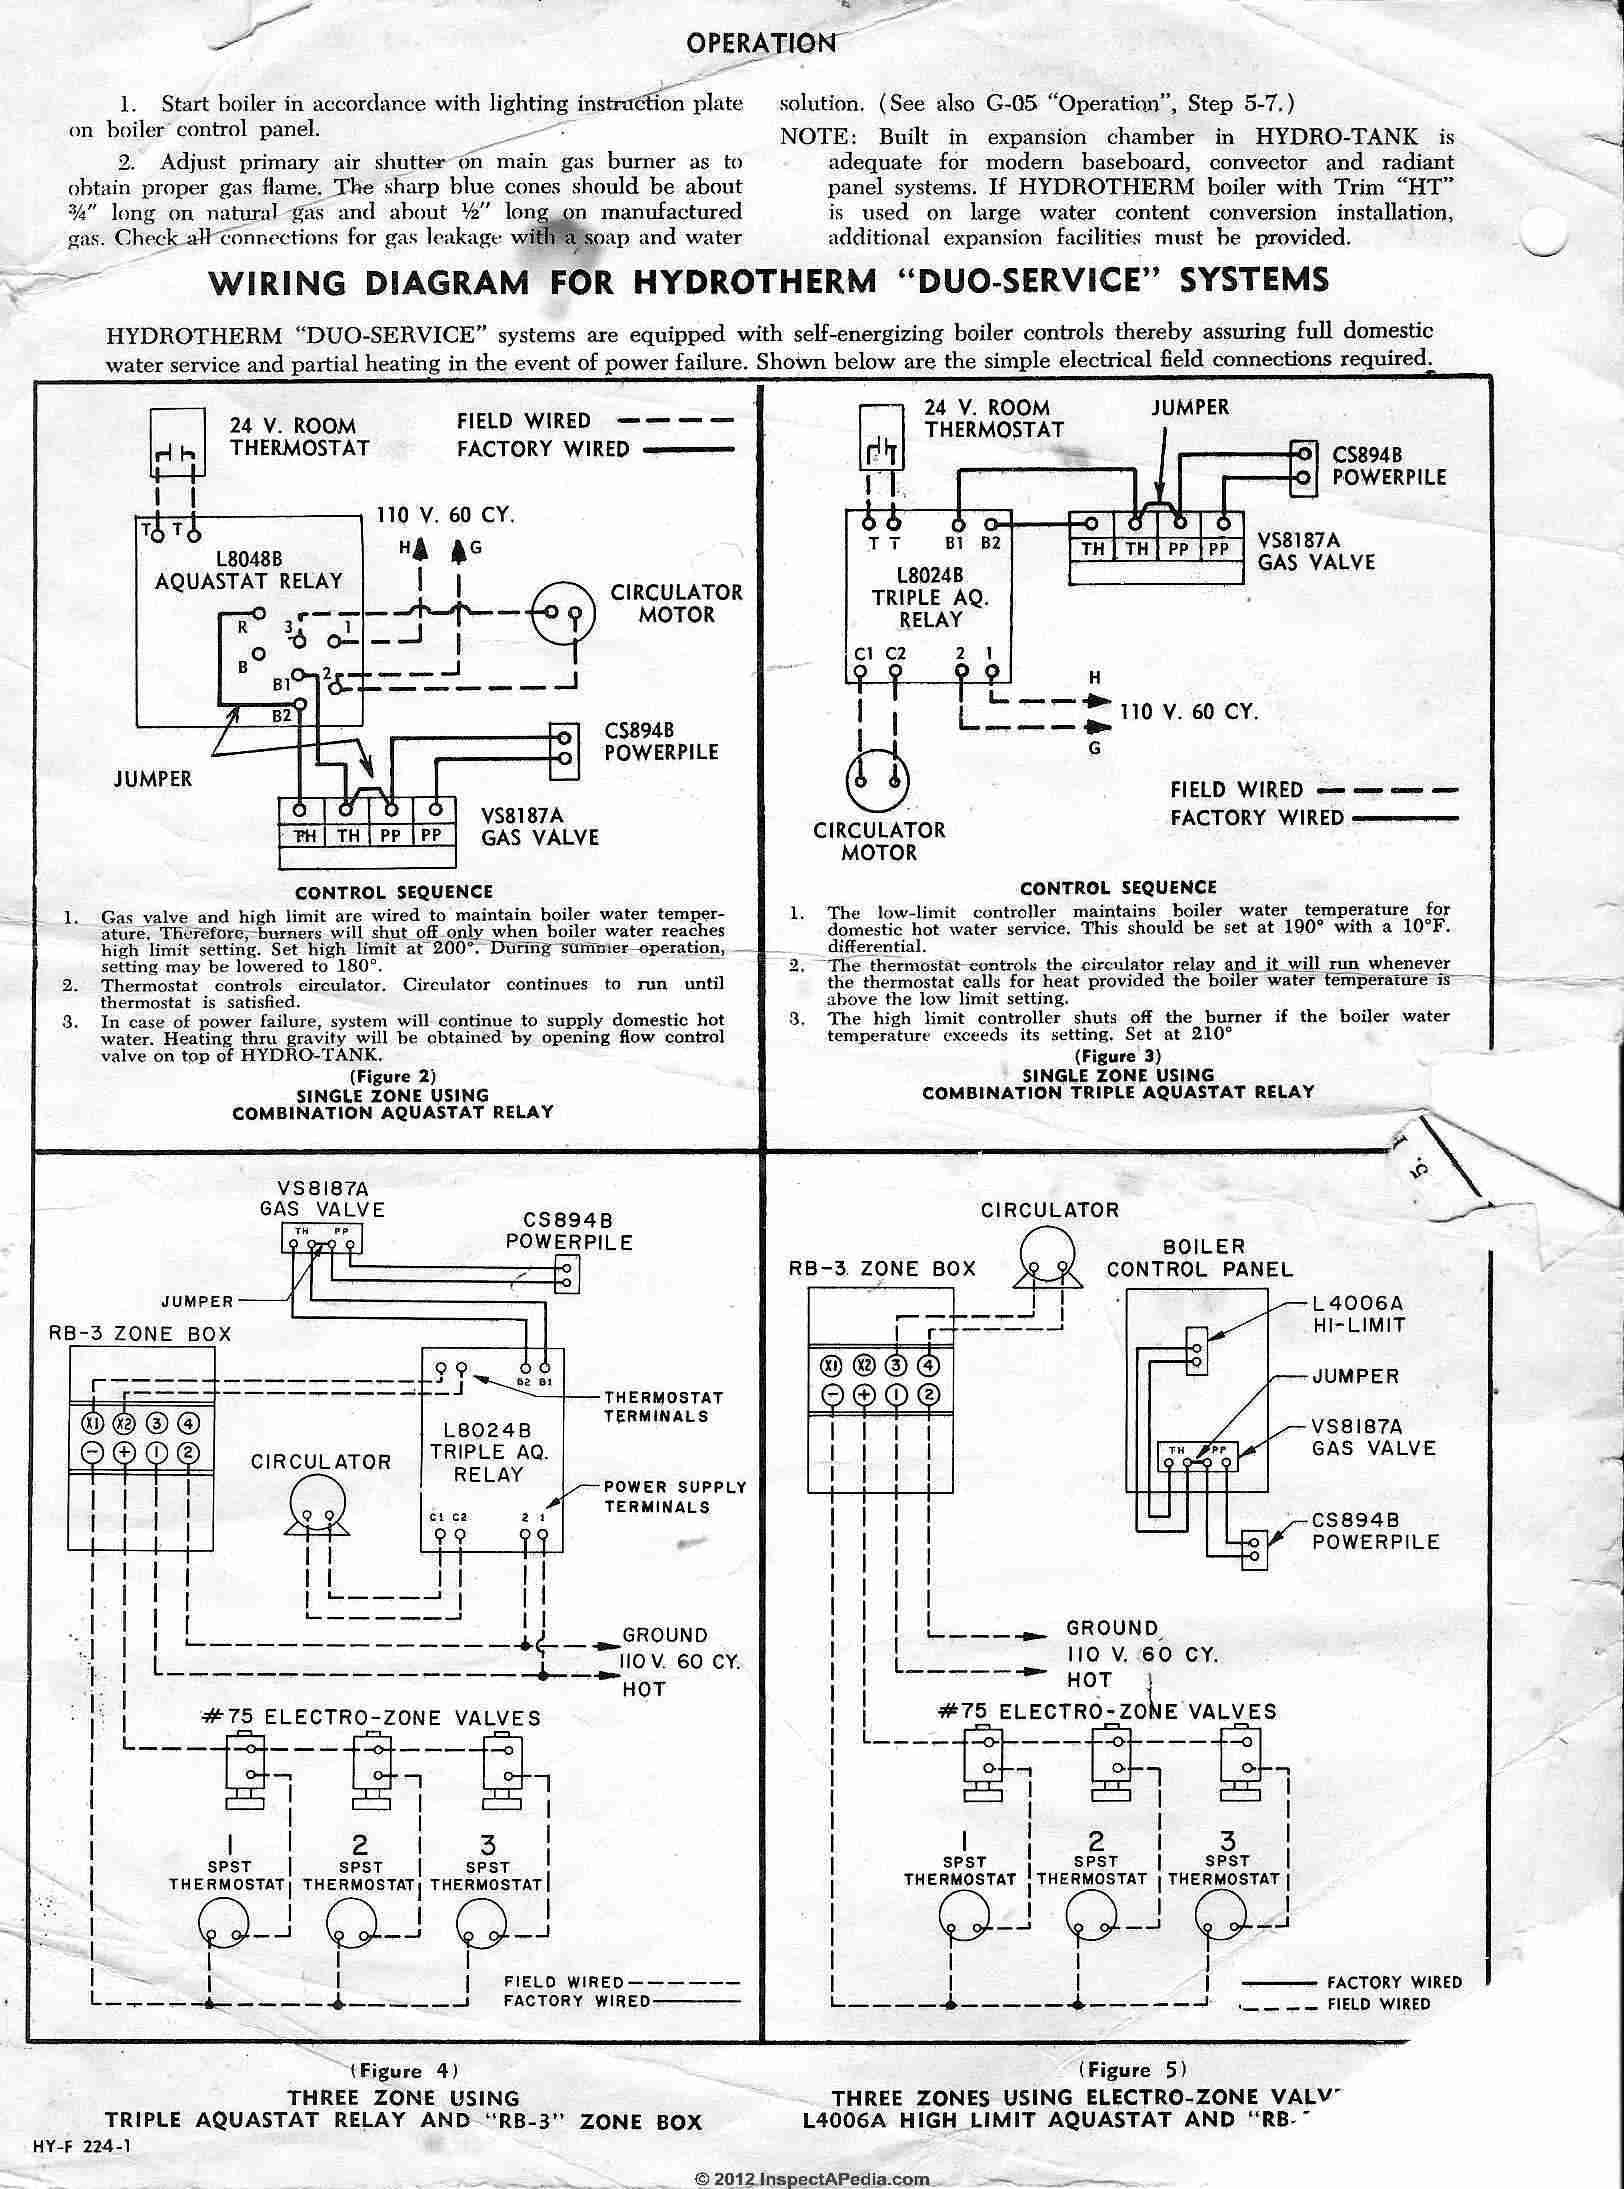 L8024B_Aquastat_0422_DJFcs honeywell l7224 wiring diagram honeywell l7224u aquastat wiring honeywell pressure switch wiring diagram at soozxer.org